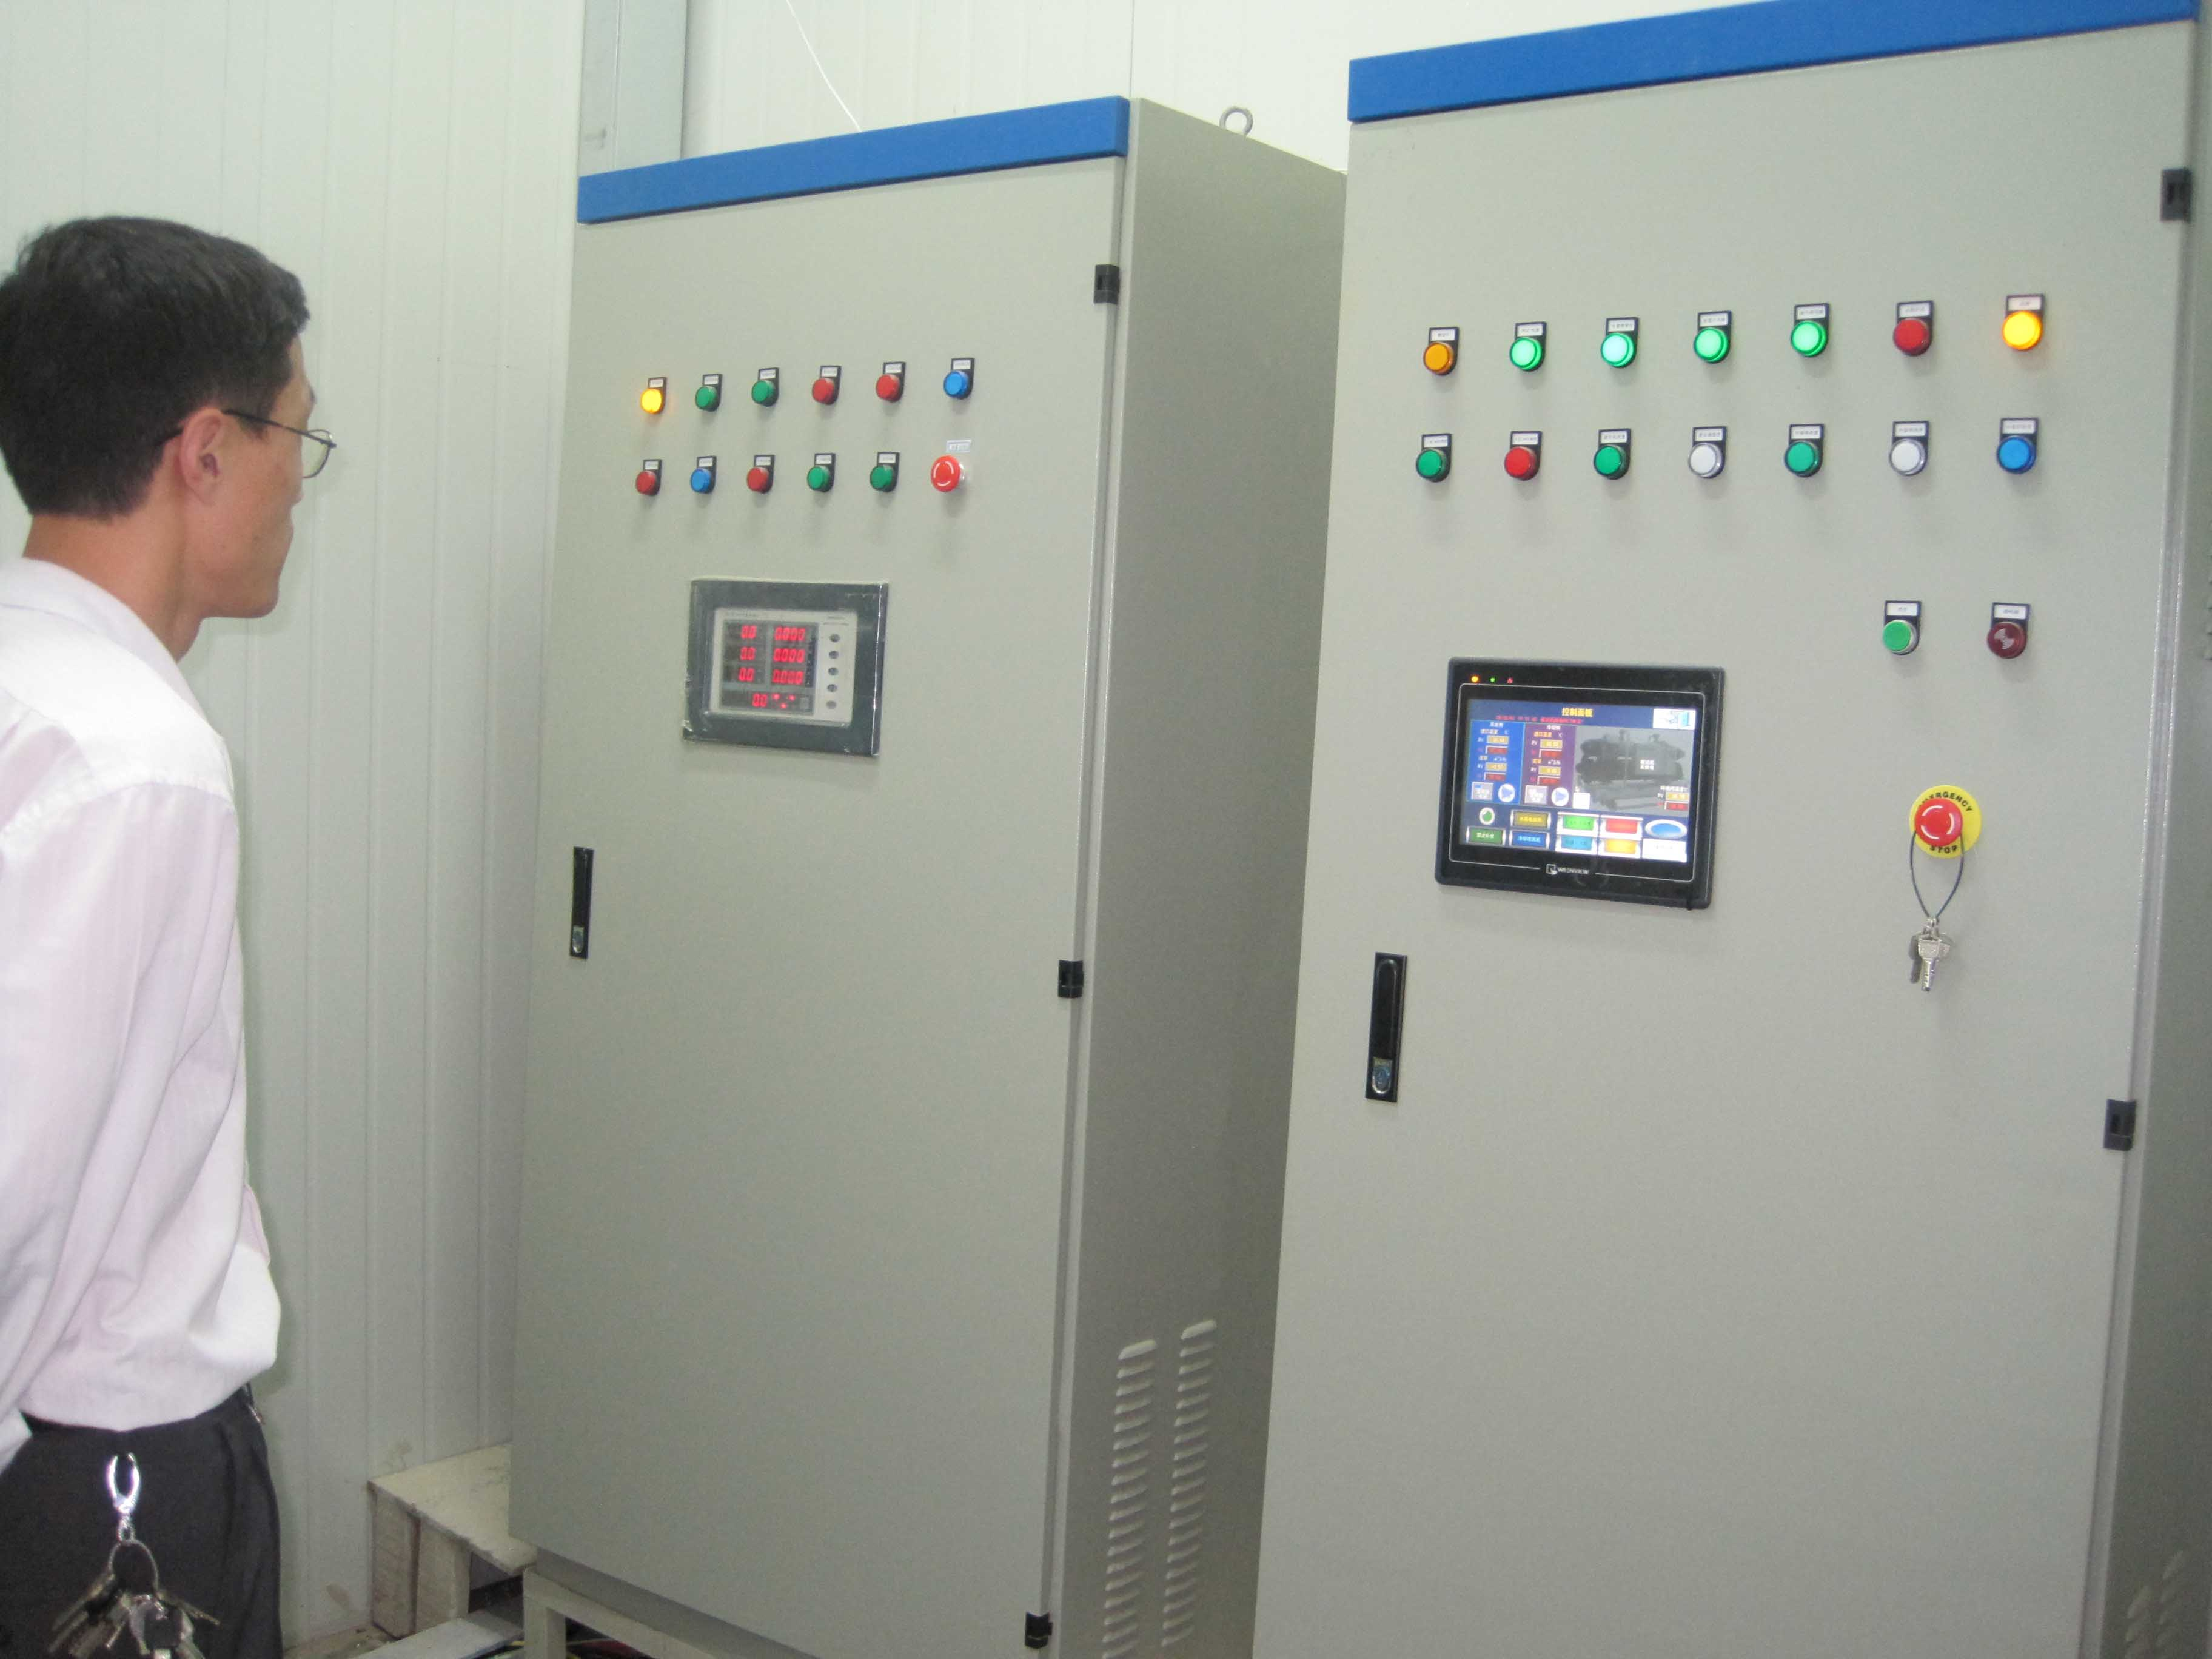 Inspection and Control Equipment